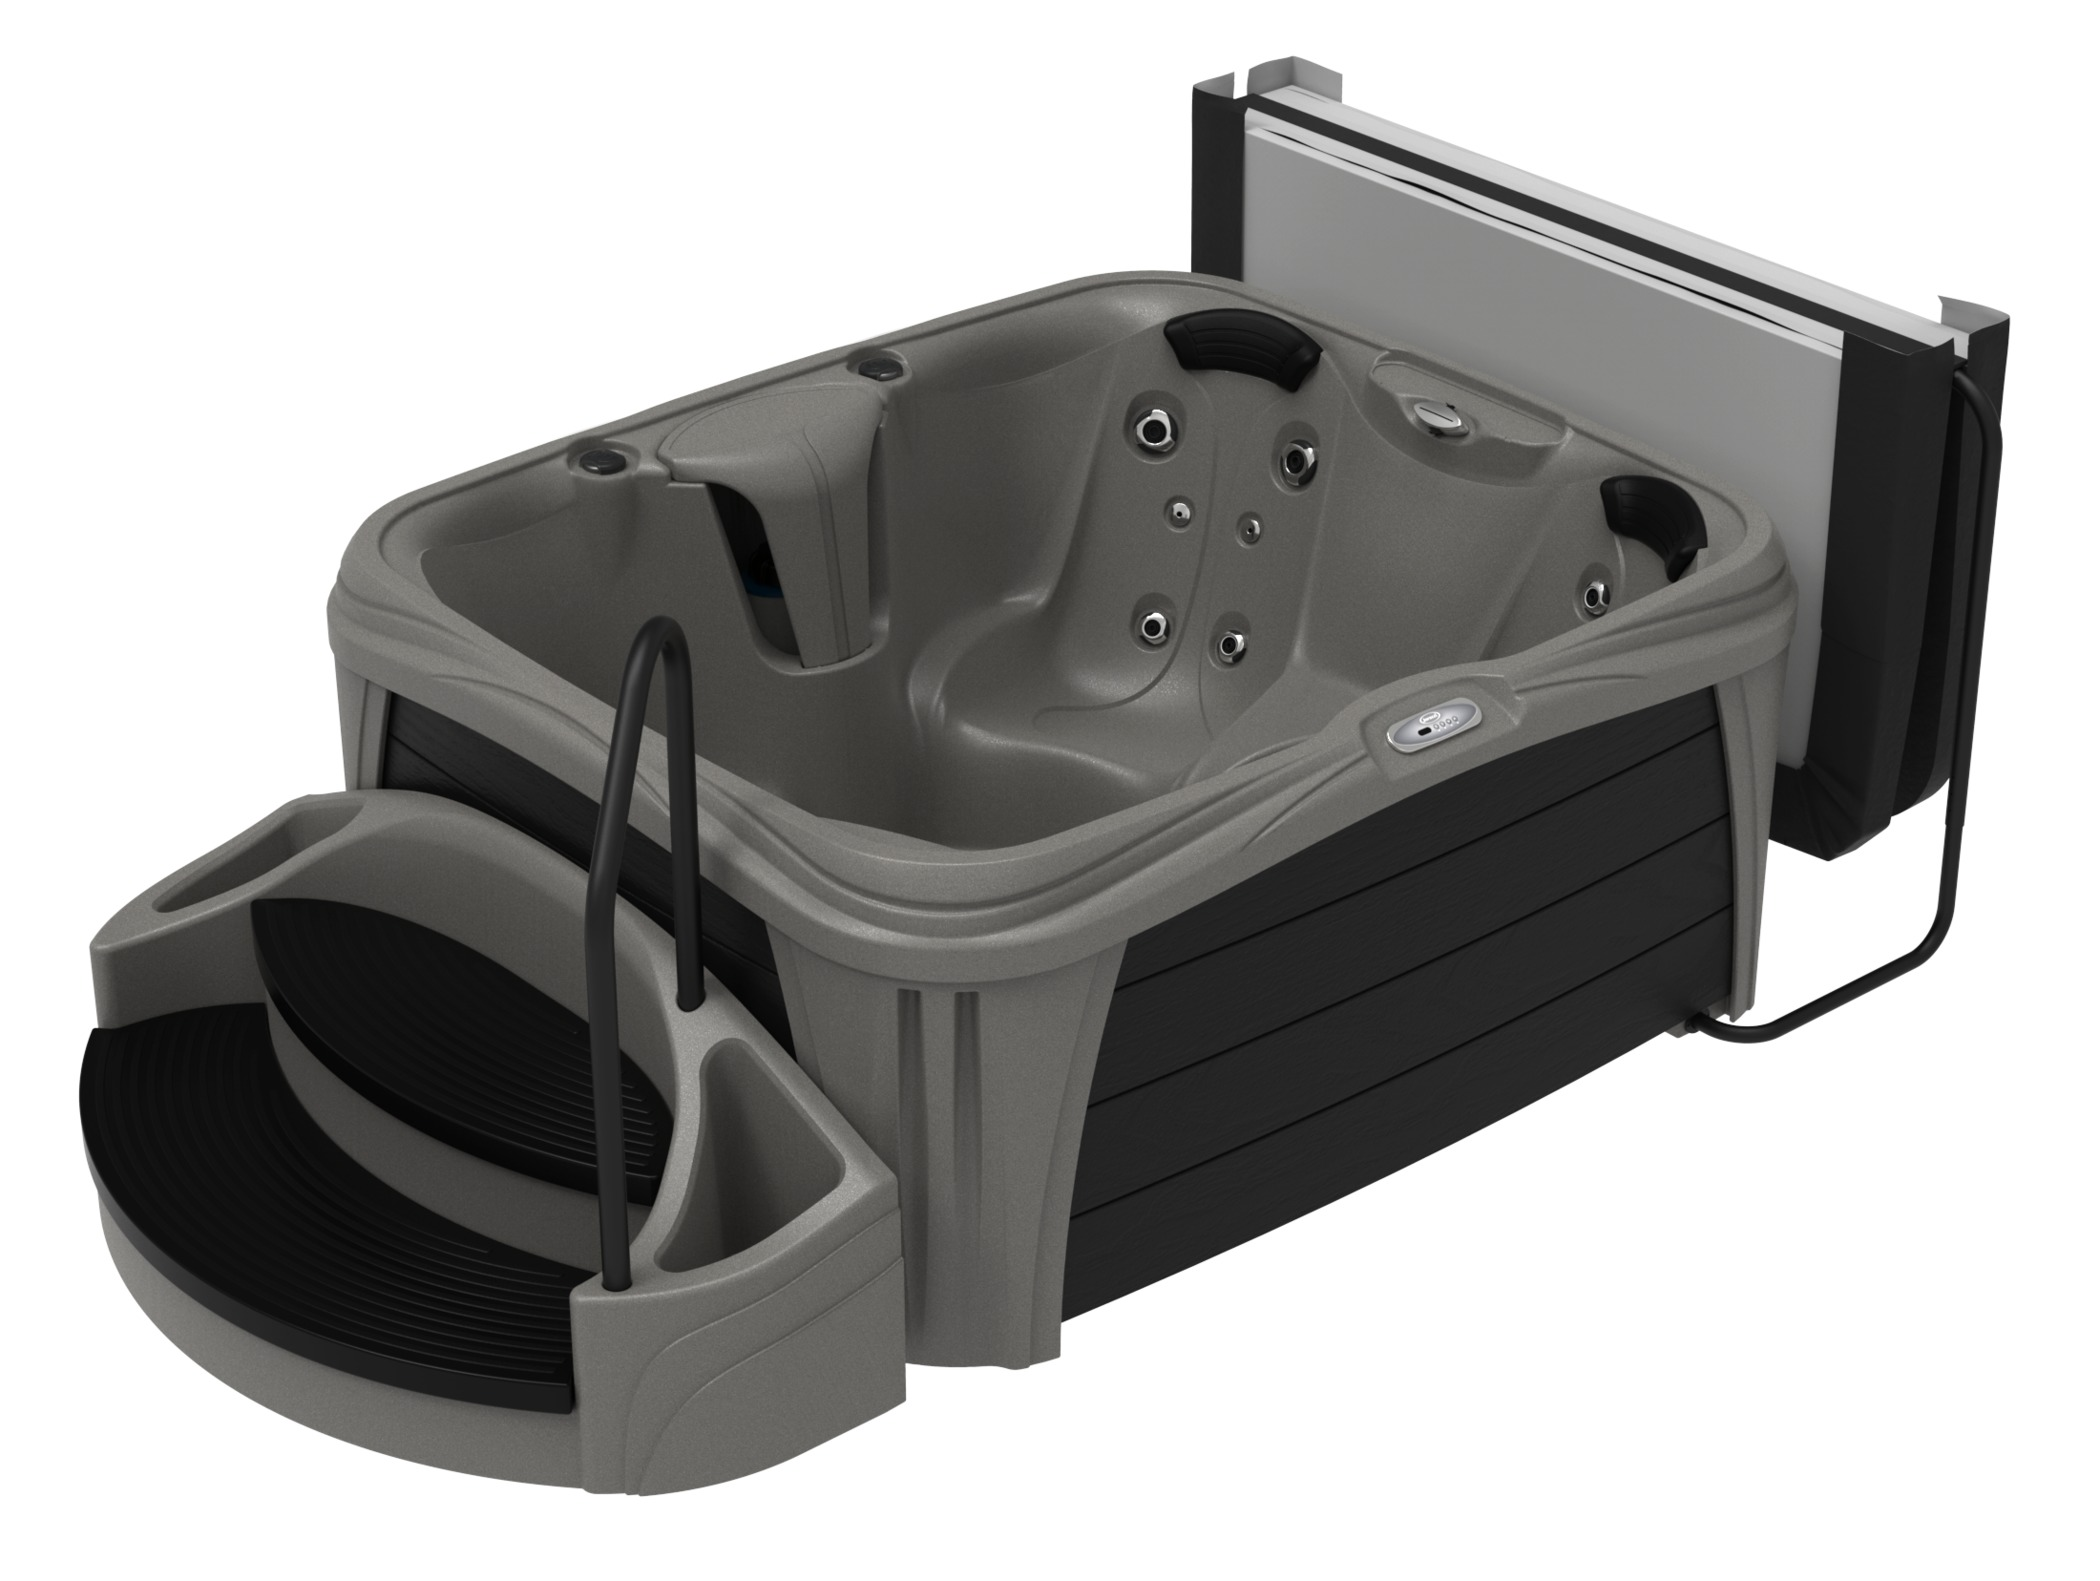 Jacuzzi Hot Tub from the Play Collection